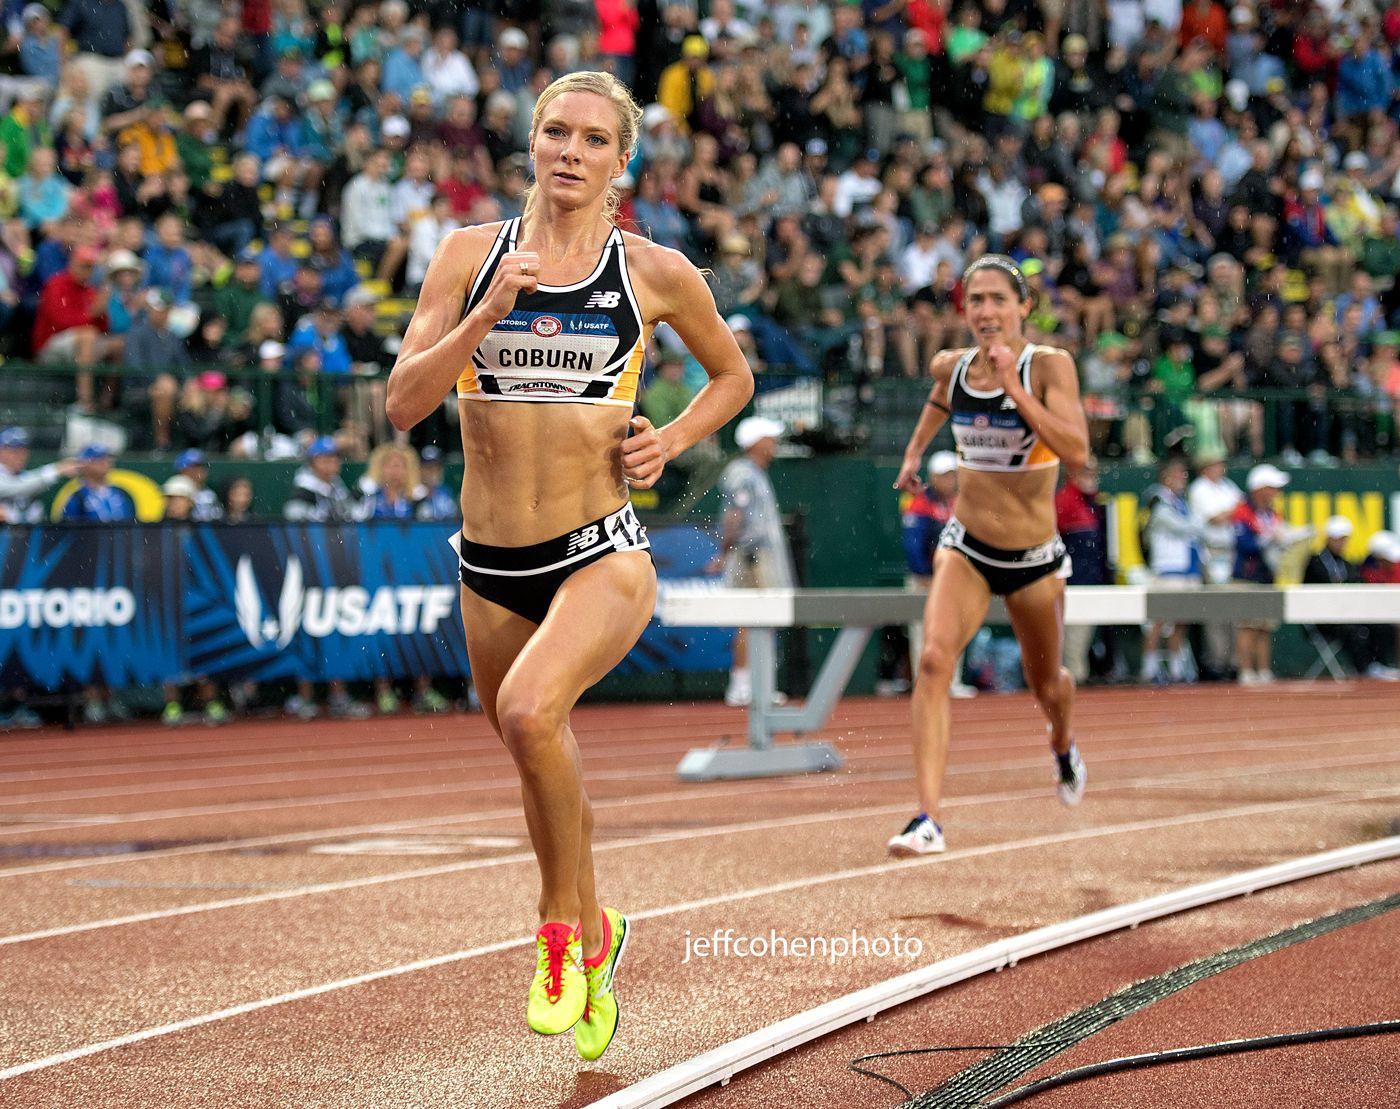 1r2016_oly_trials_day_6_emma_coburn_steeple_jeff_cohen_photo_20287_web.jpg